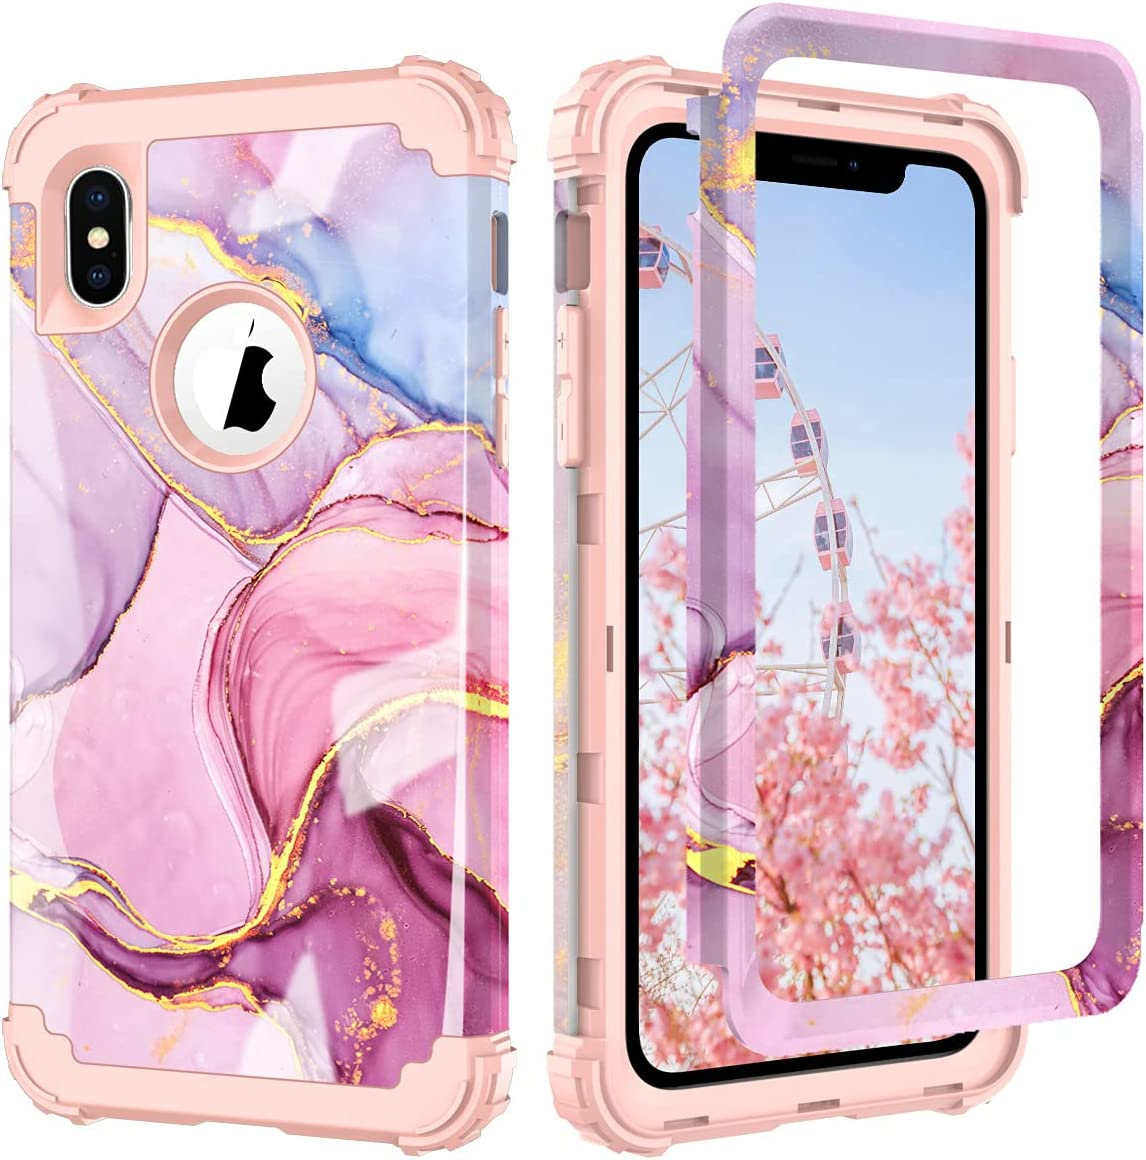 PIXIU for iPhone Xs Max case,3 in 1 Hybrid Hard PC Soft Rubber Heavy Duty Rugged Shockproof Protective Phone Cover for iPhone Xs Max 6.5 Inch 2018 Released (Purple Marble)